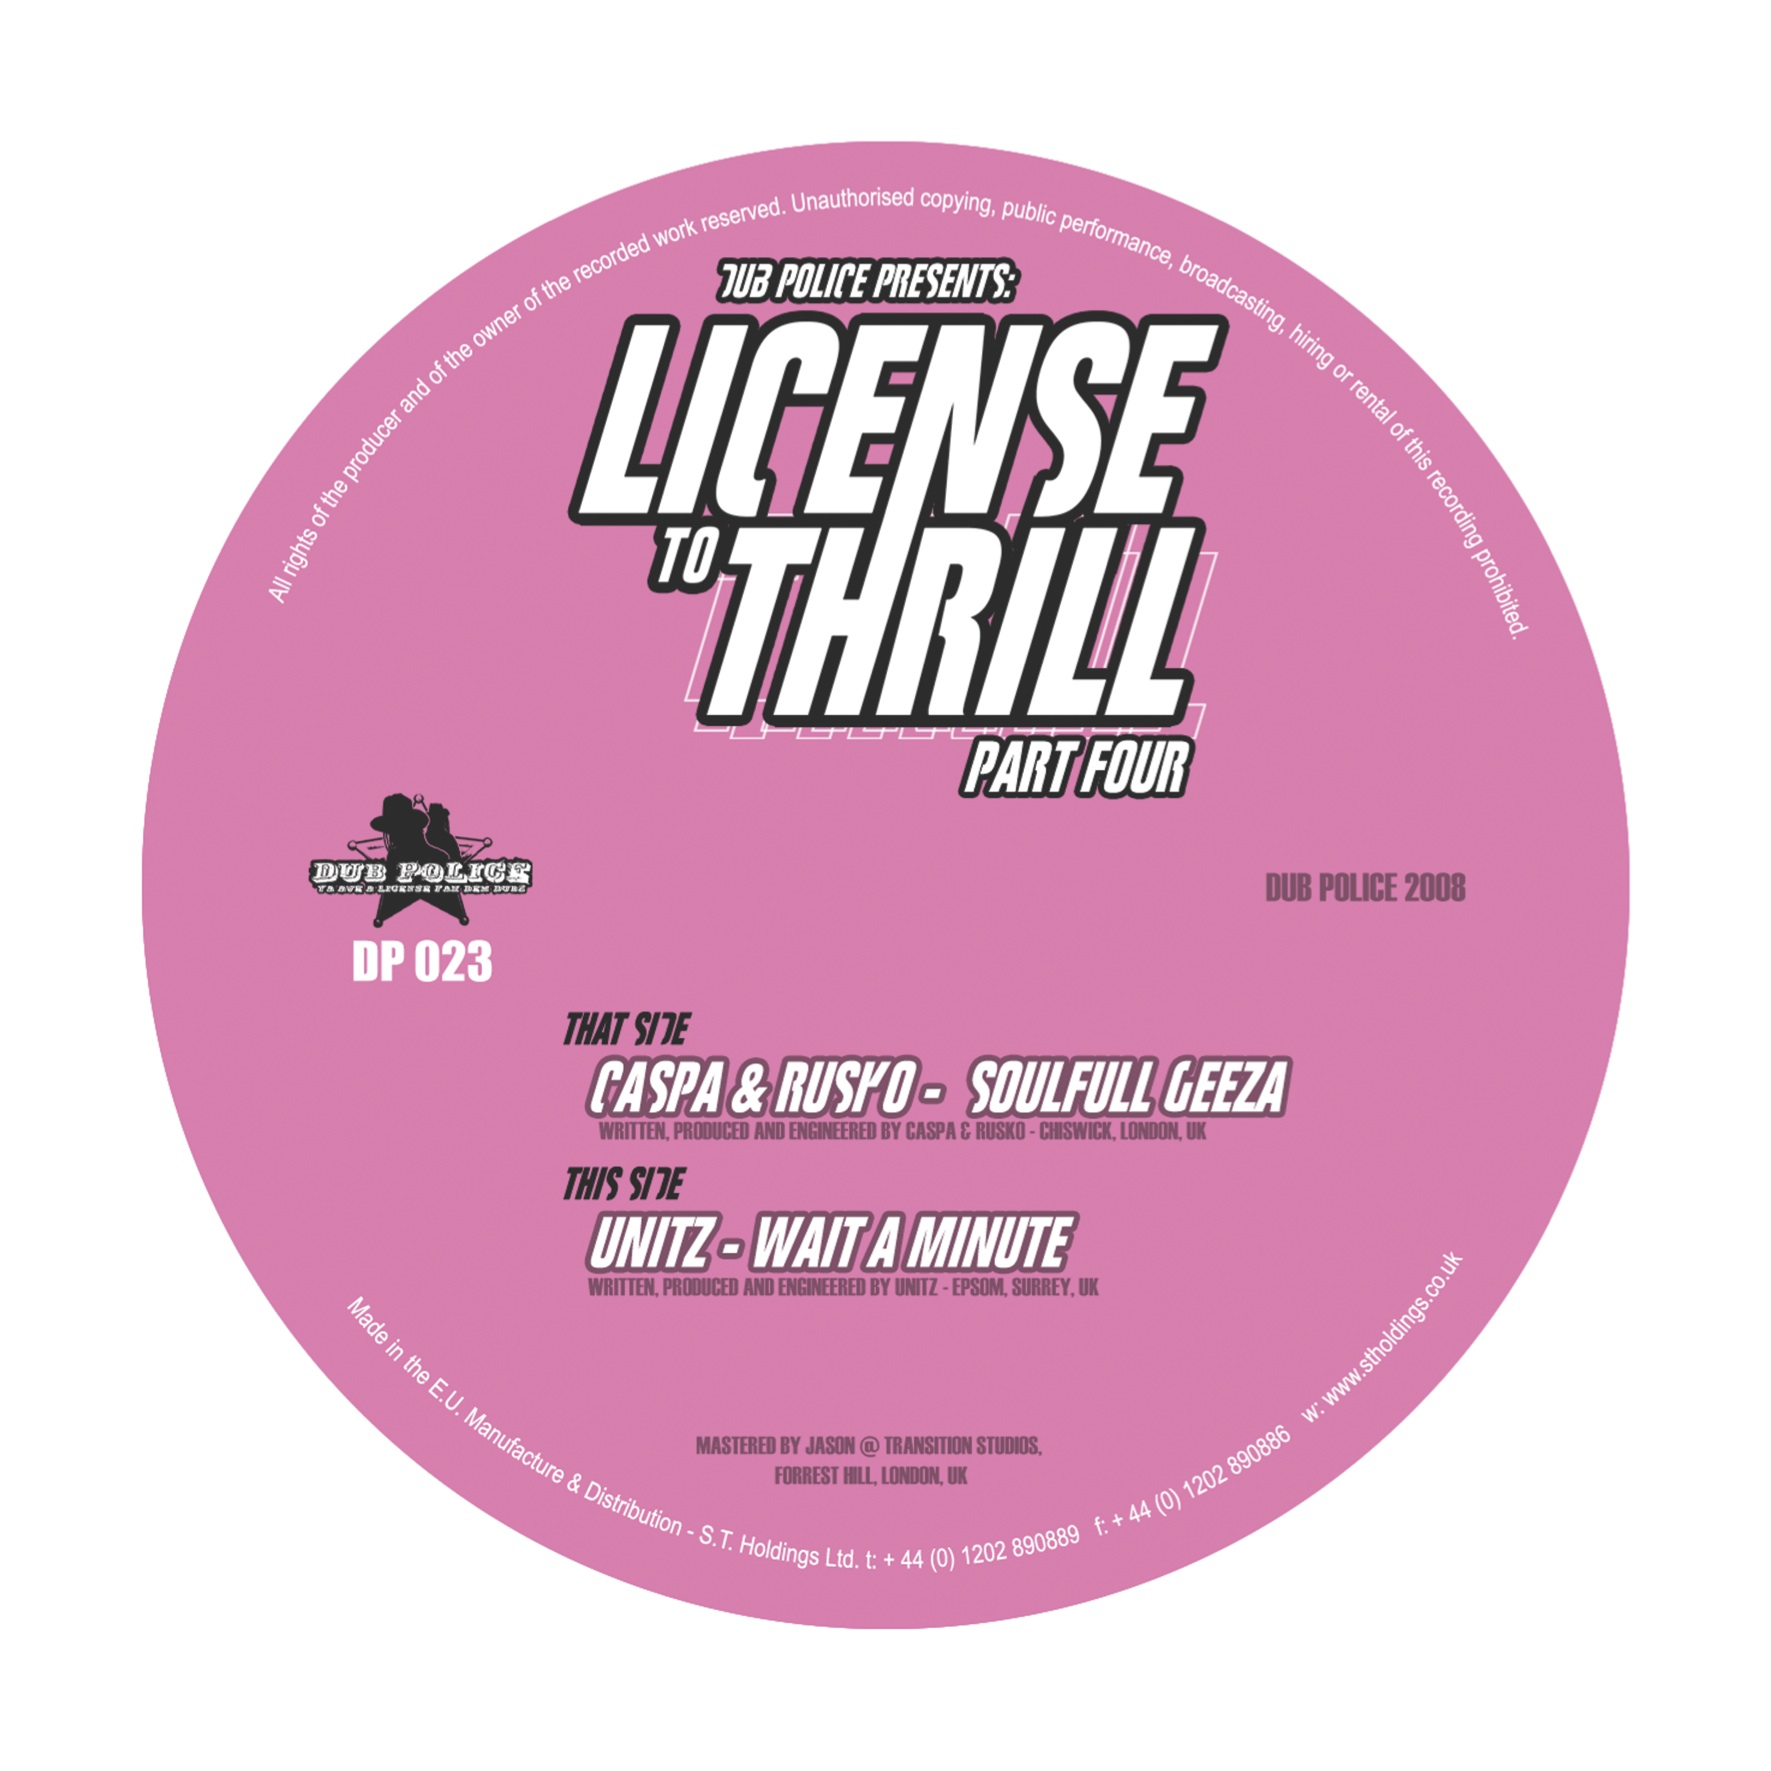 DP023: LICENSE TO THRILL PT.4